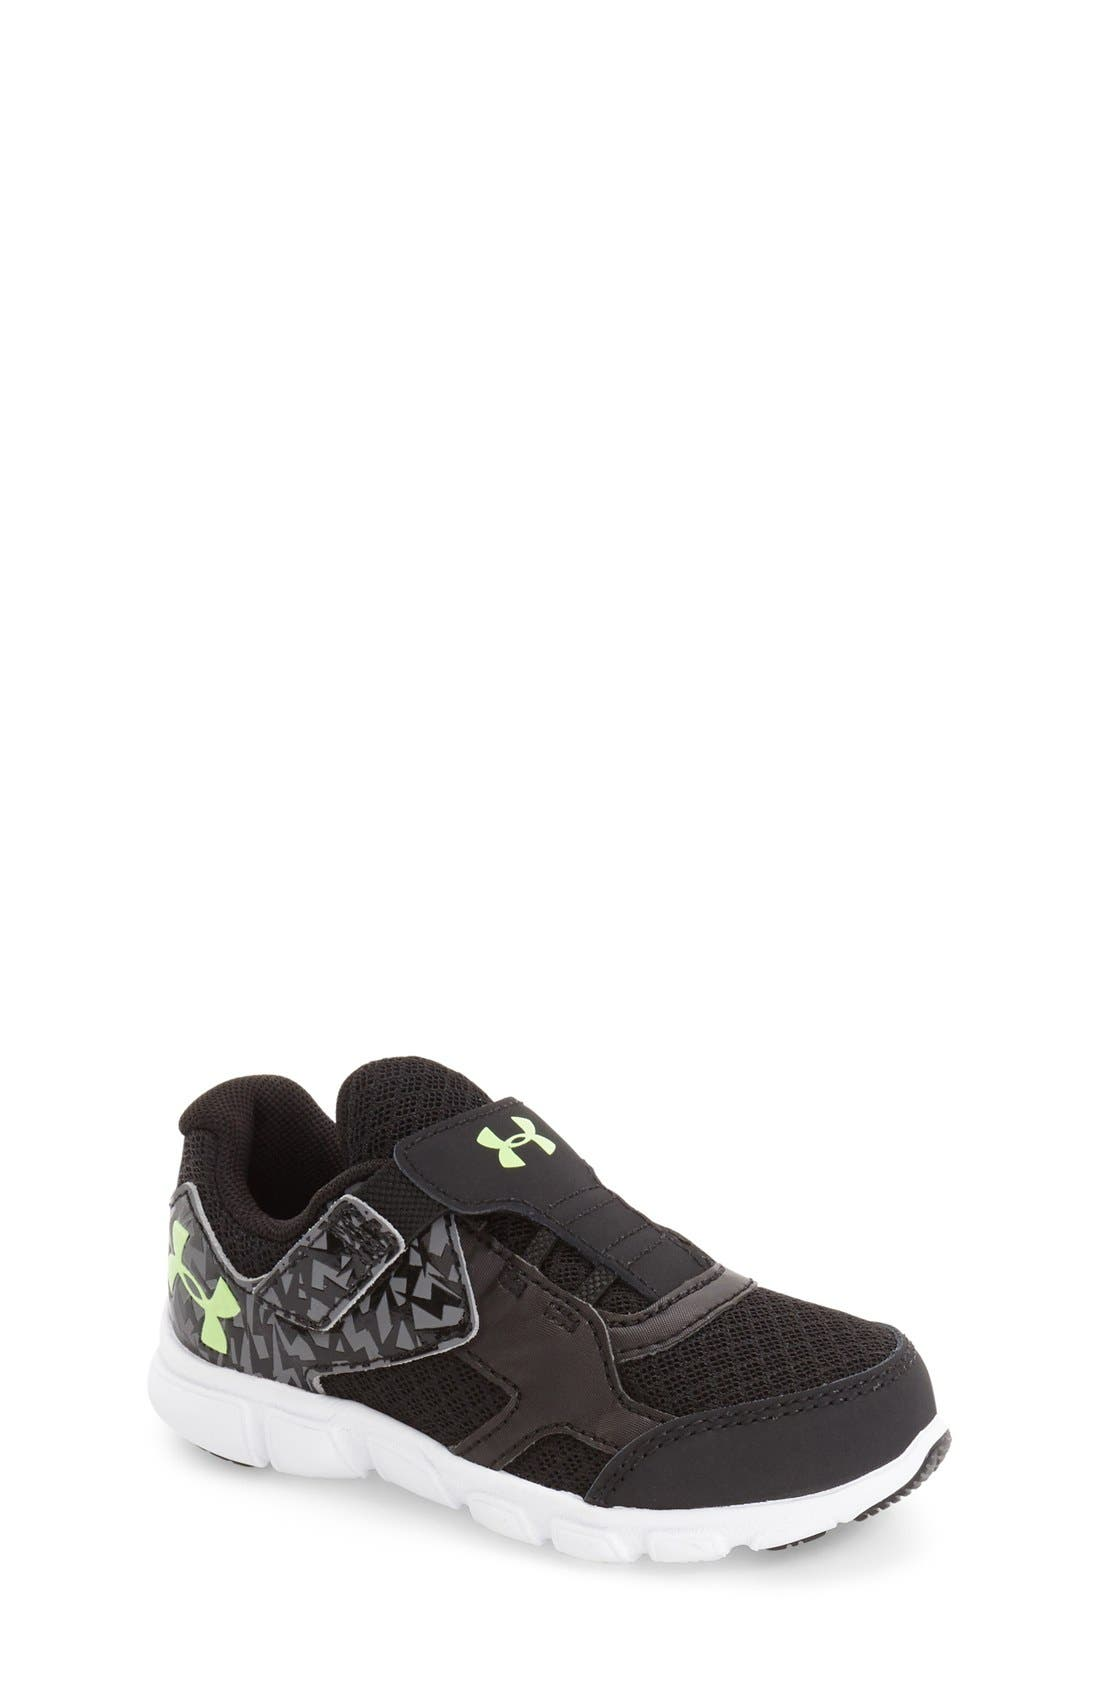 Under Armour Engage II Athletic Shoe (Walker & Toddler)